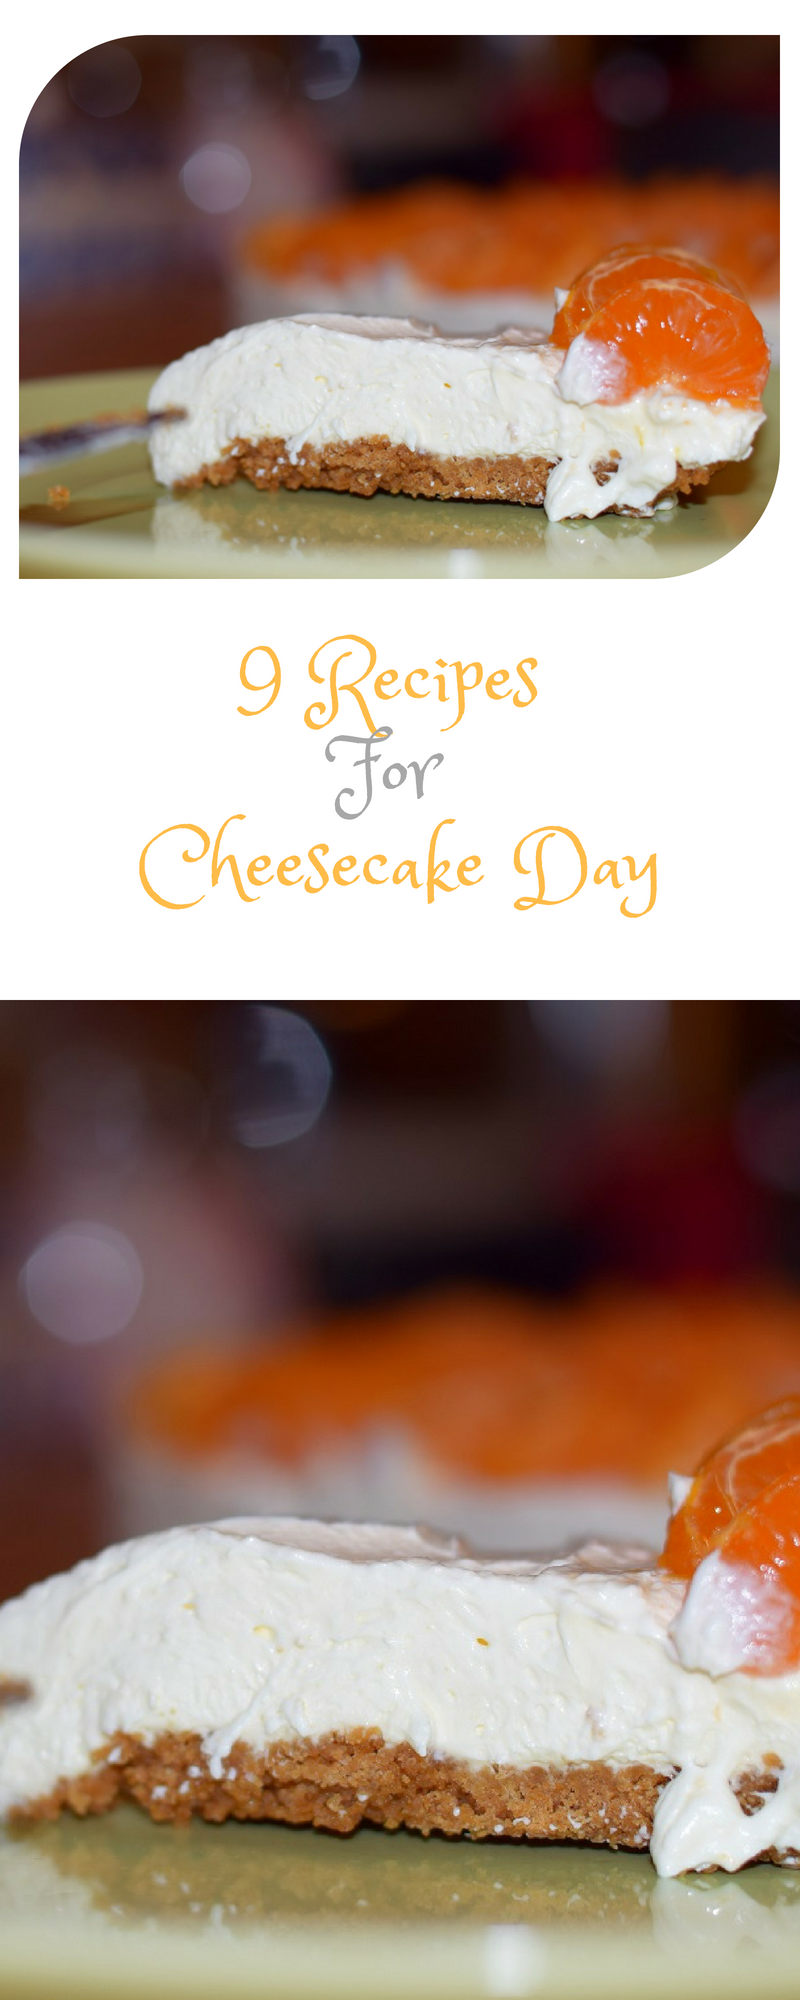 9 Recipes For Cheesecake Day